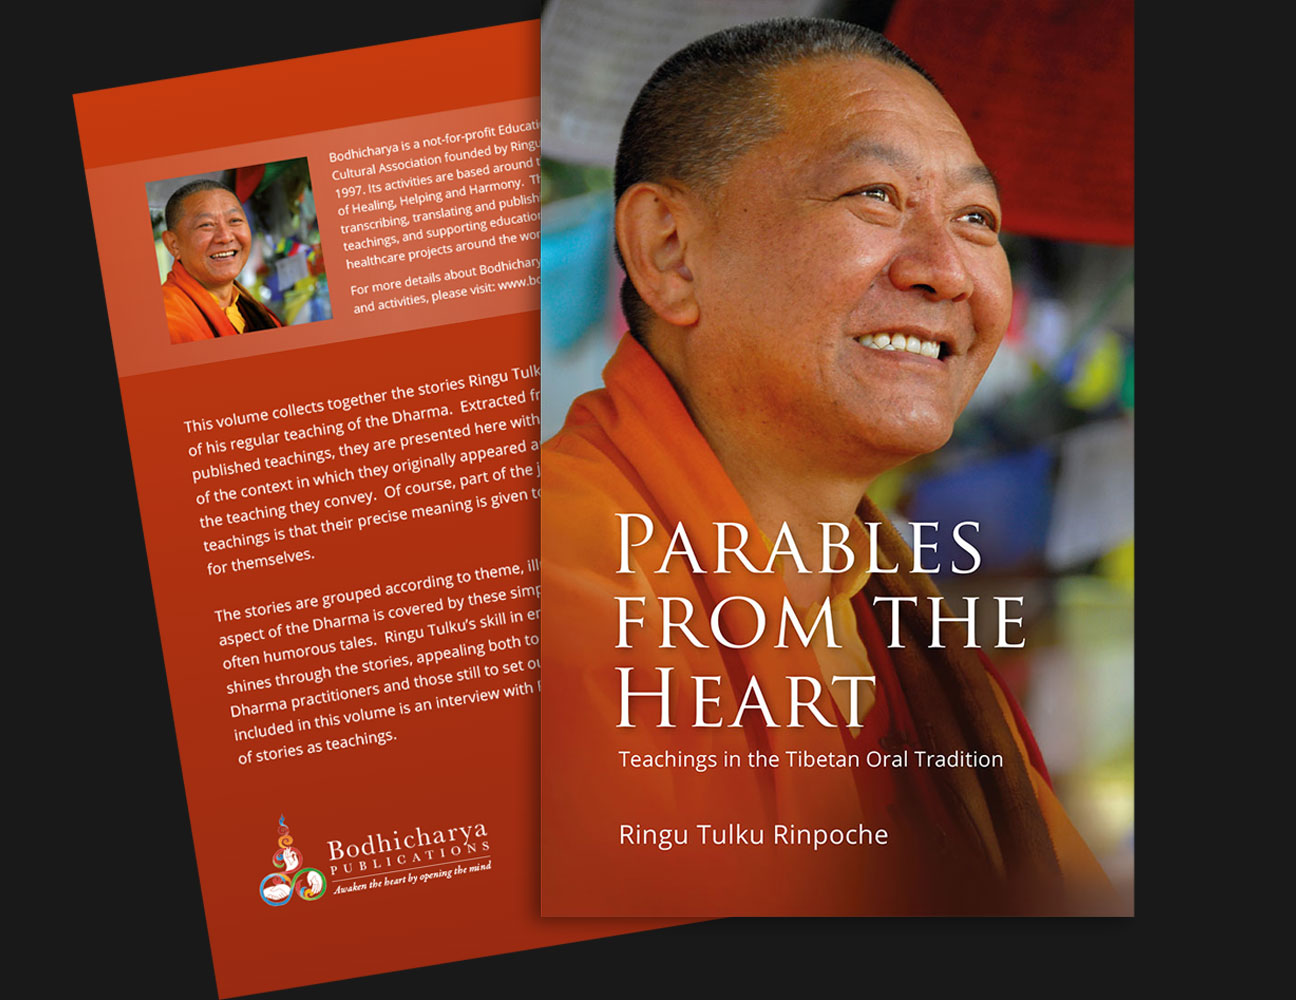 Parables from the Heart